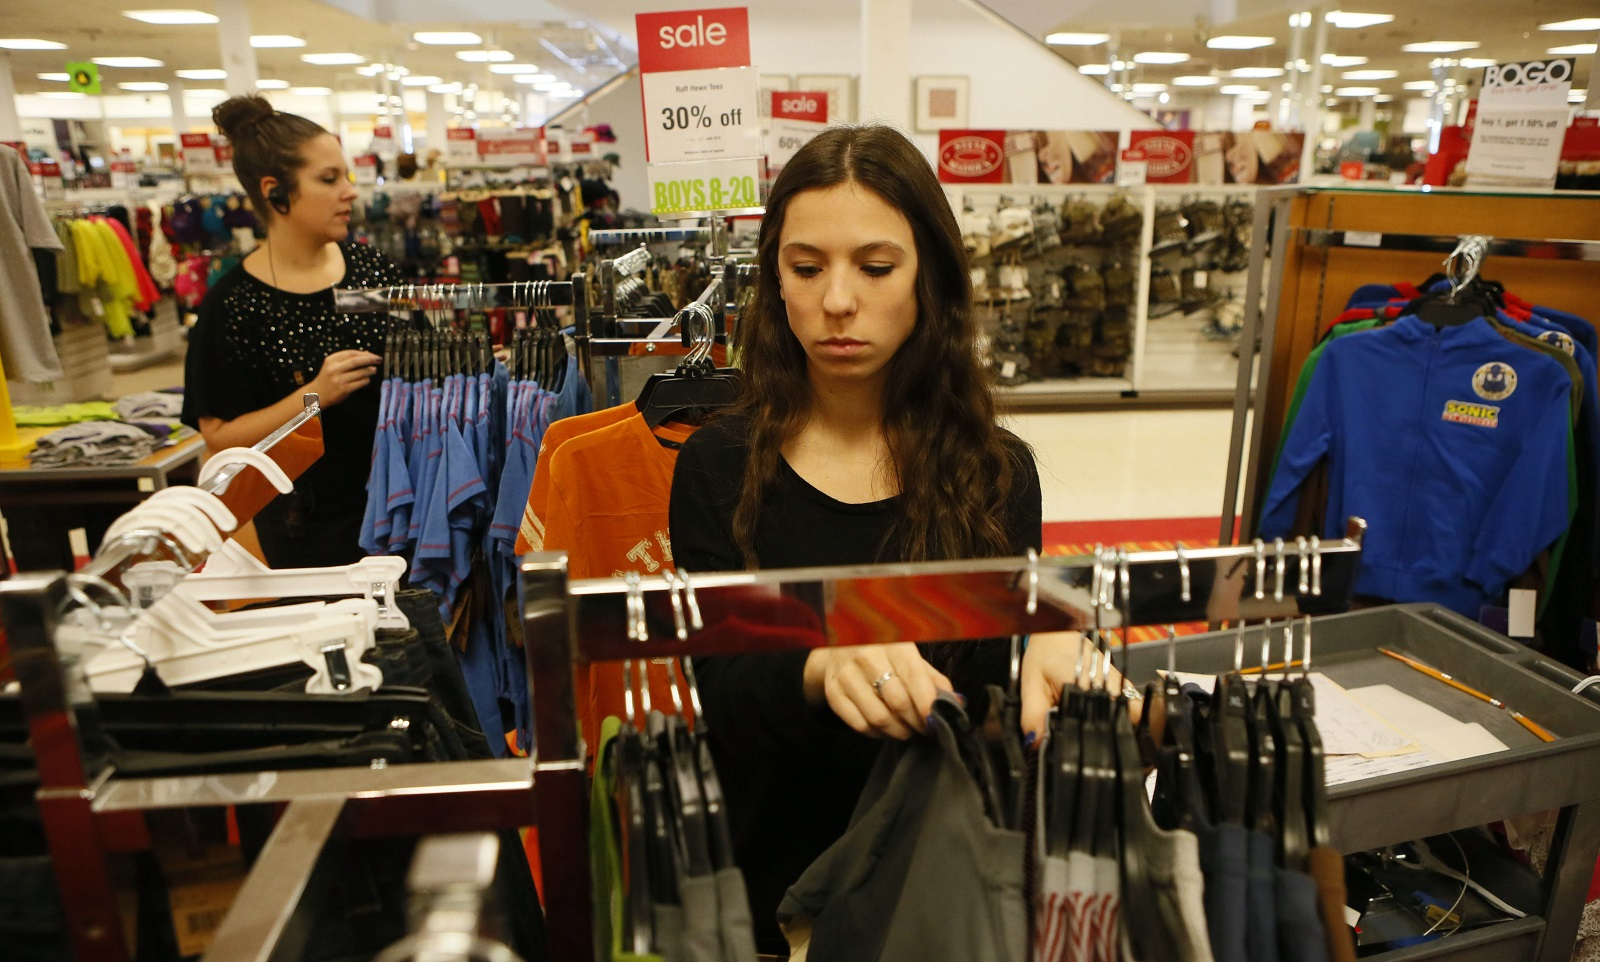 Bon-Ton has been struggling with declining sales. (Derek Gee/Buffalo News file photo)